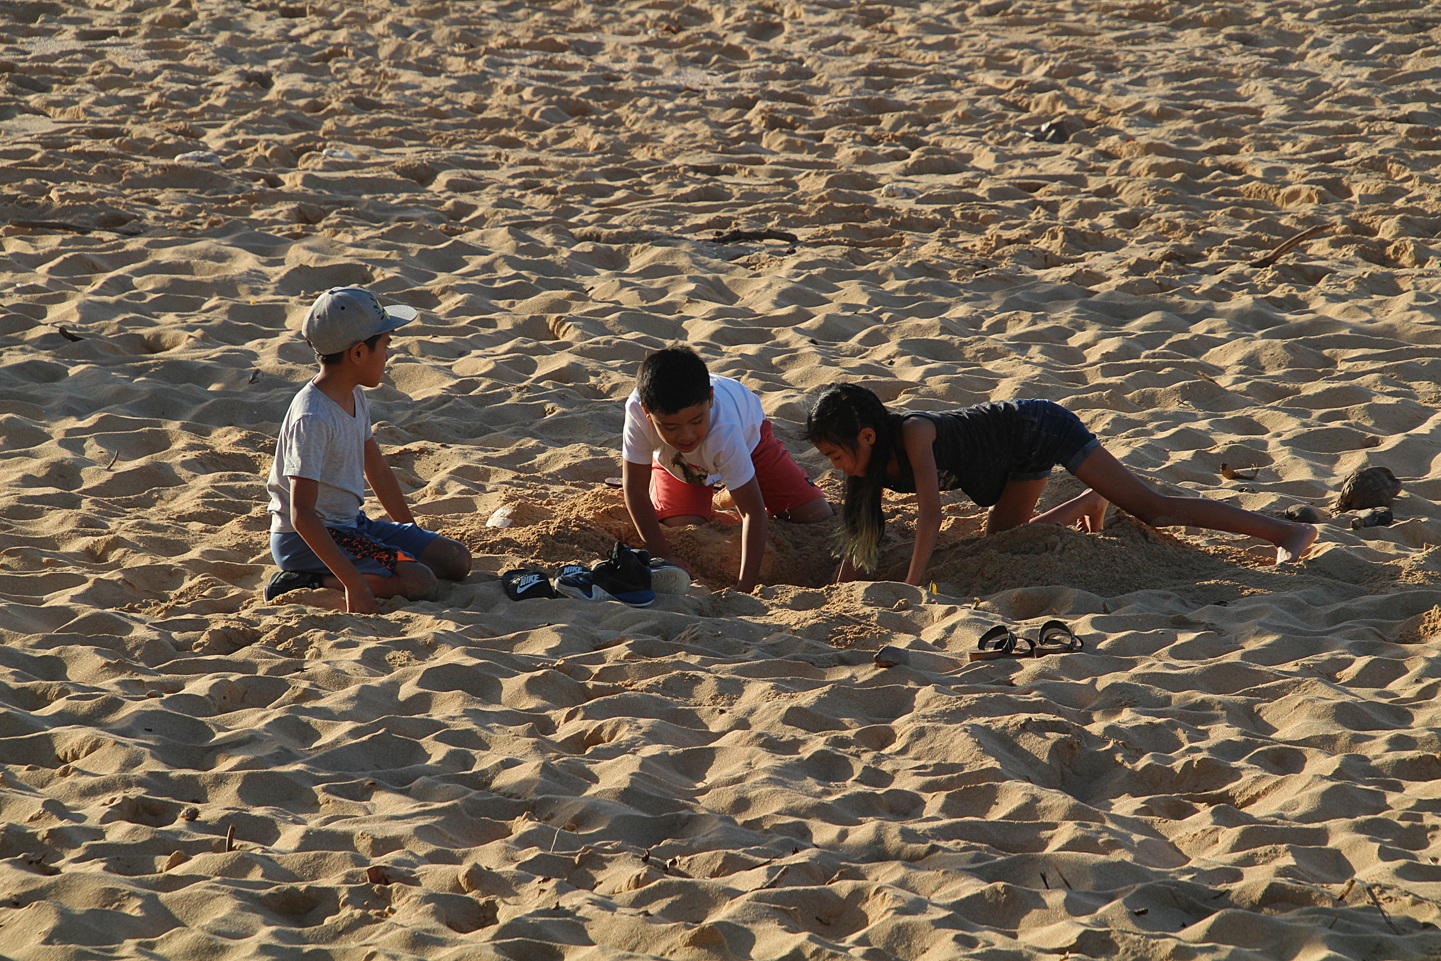 The kids from today's tour playing in the sand at Pipeline.